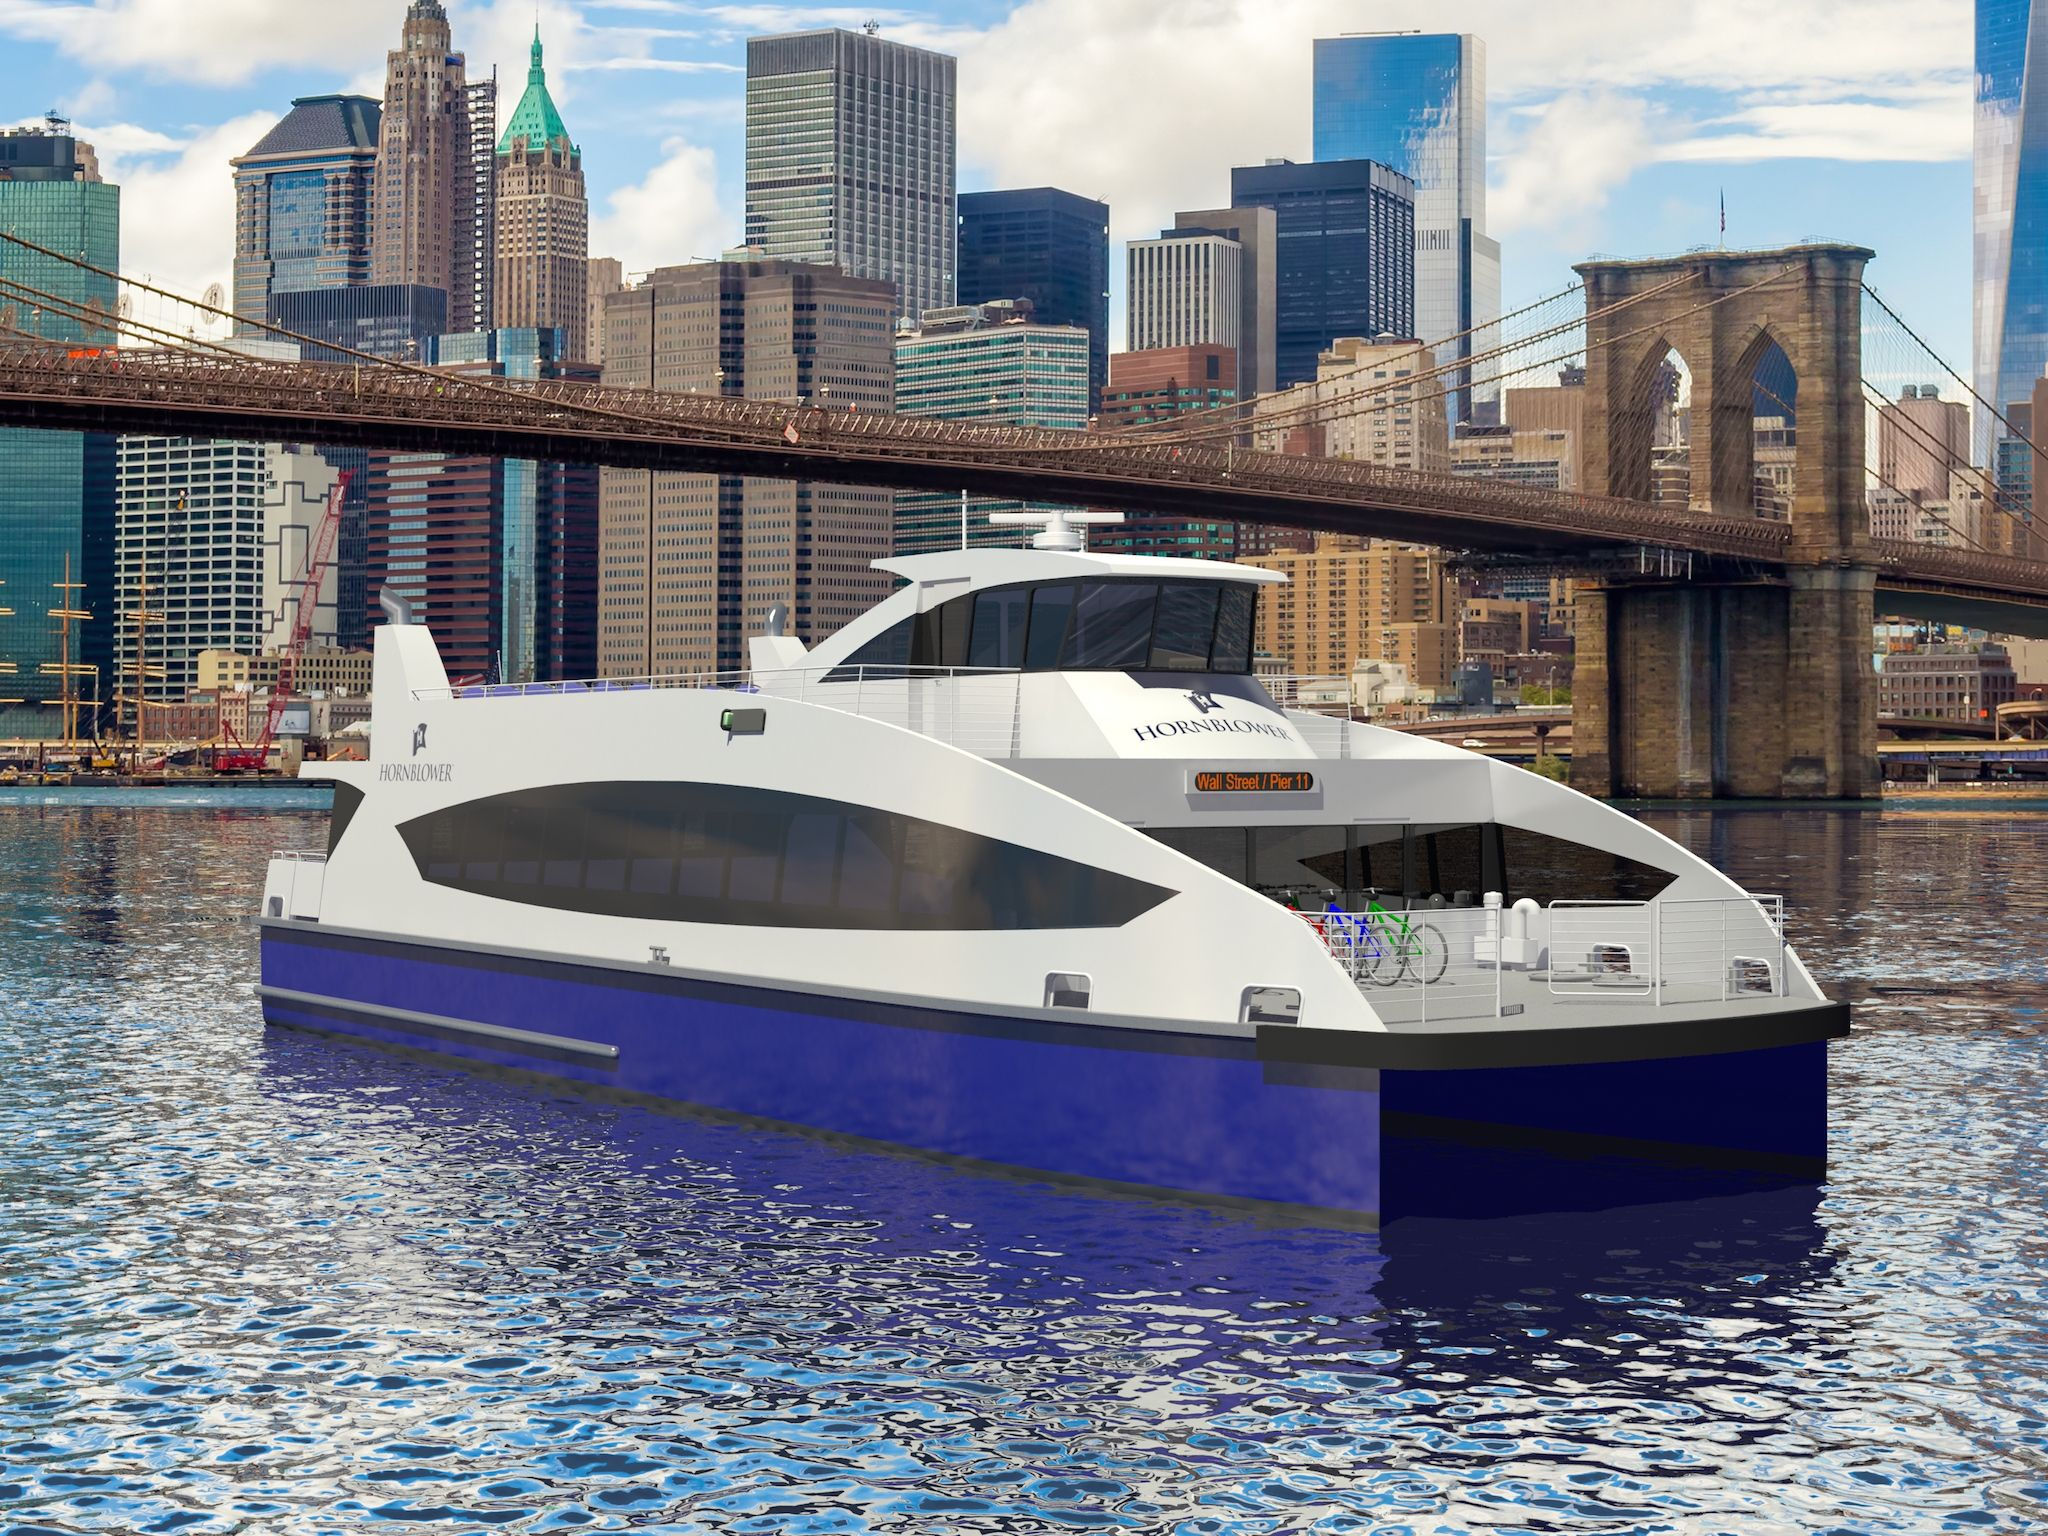 Rendering of the new Citywide Ferry service boats (credit: NYC Mayor's Office)